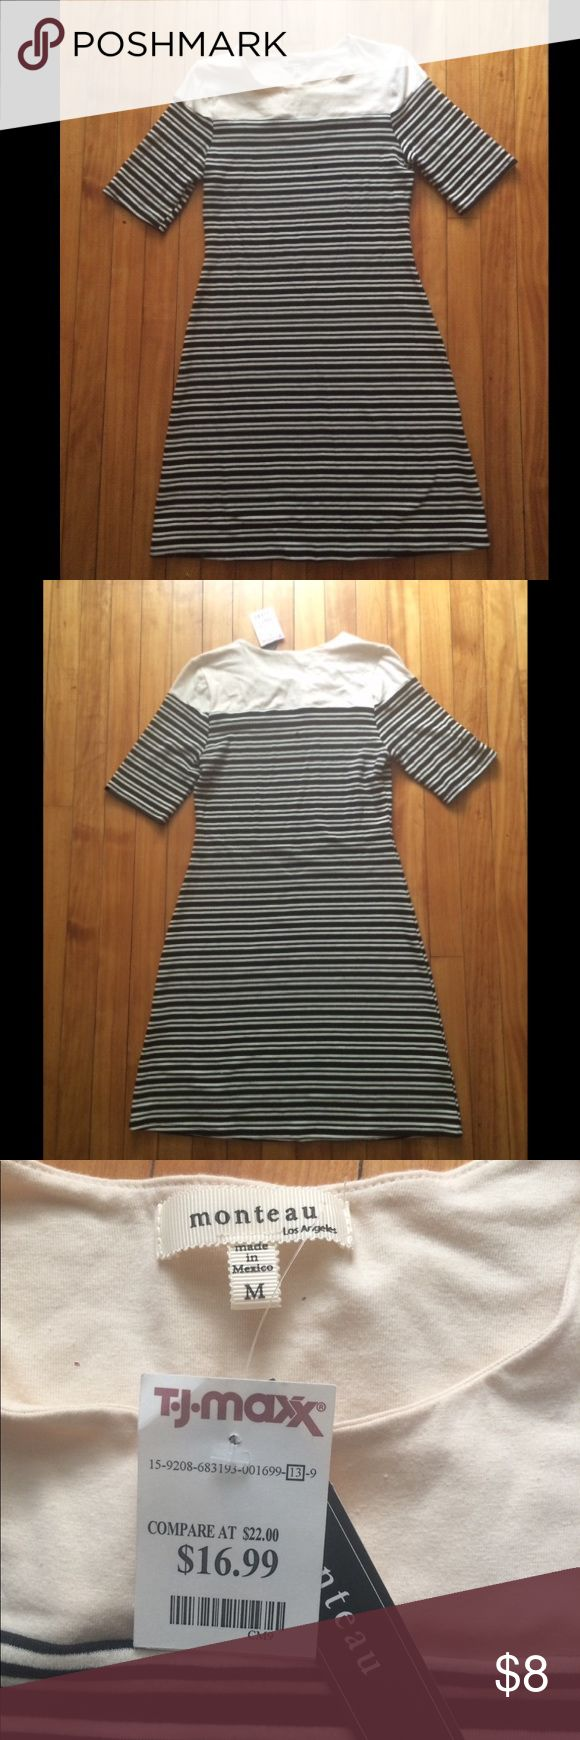 NWT Monteau 97% cotton dress Bought in TJ Max at $16.99. Wanted to use it as a PJ but never did... New with tag, very comfy! Price firm unless bundle Monteau Dresses